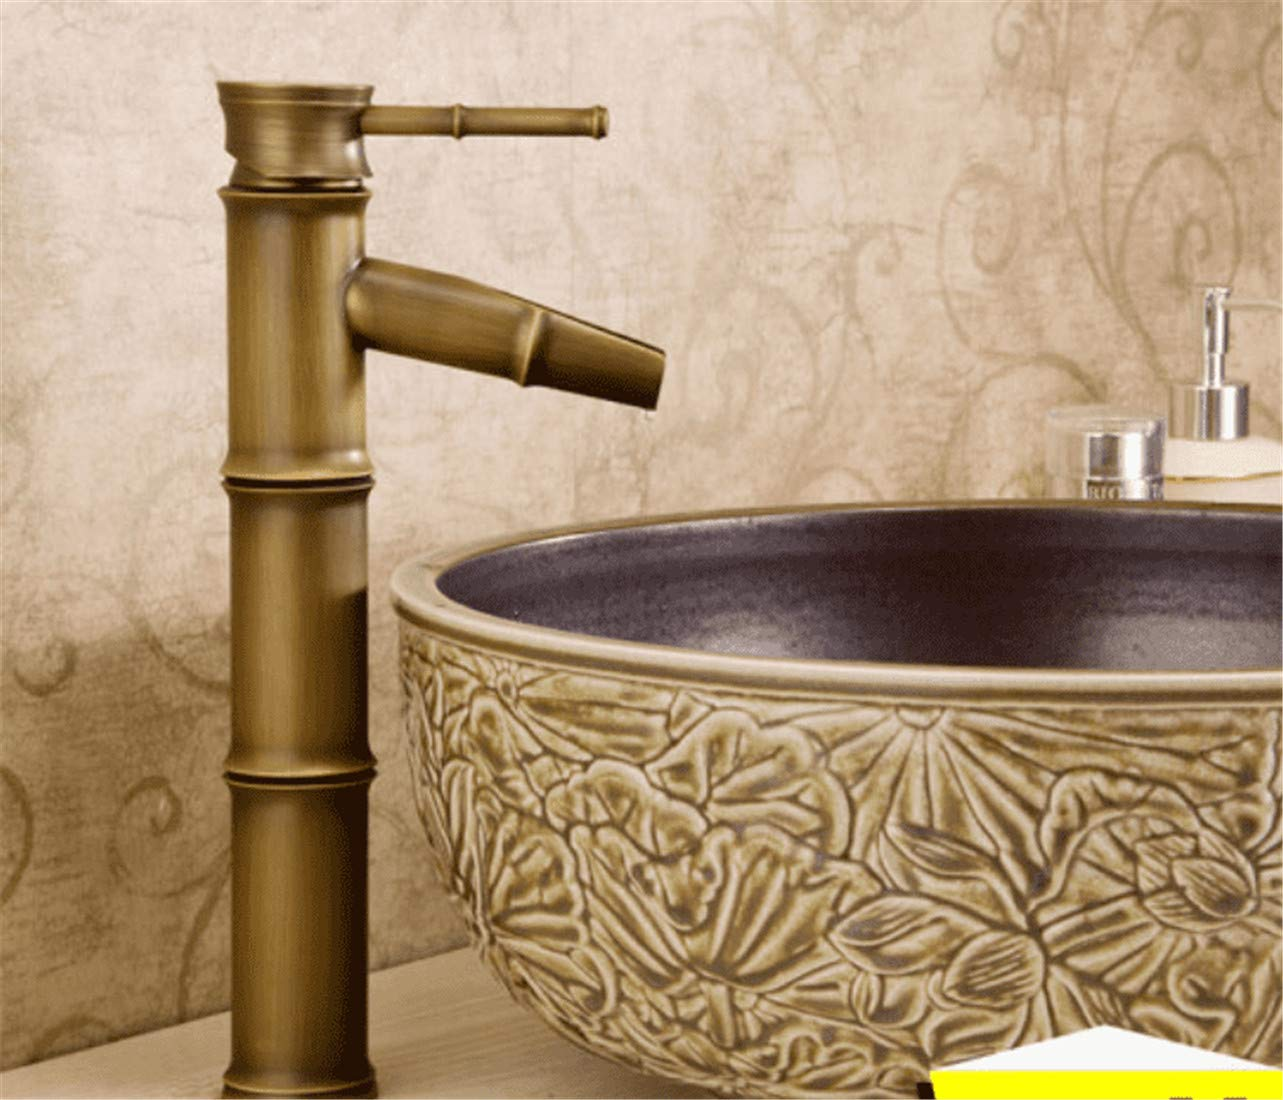 E Mucert Tap,All Copper,European Style Archaize Tap,Hot and Cold Water,Bathroom Retro Basin Faucet,K